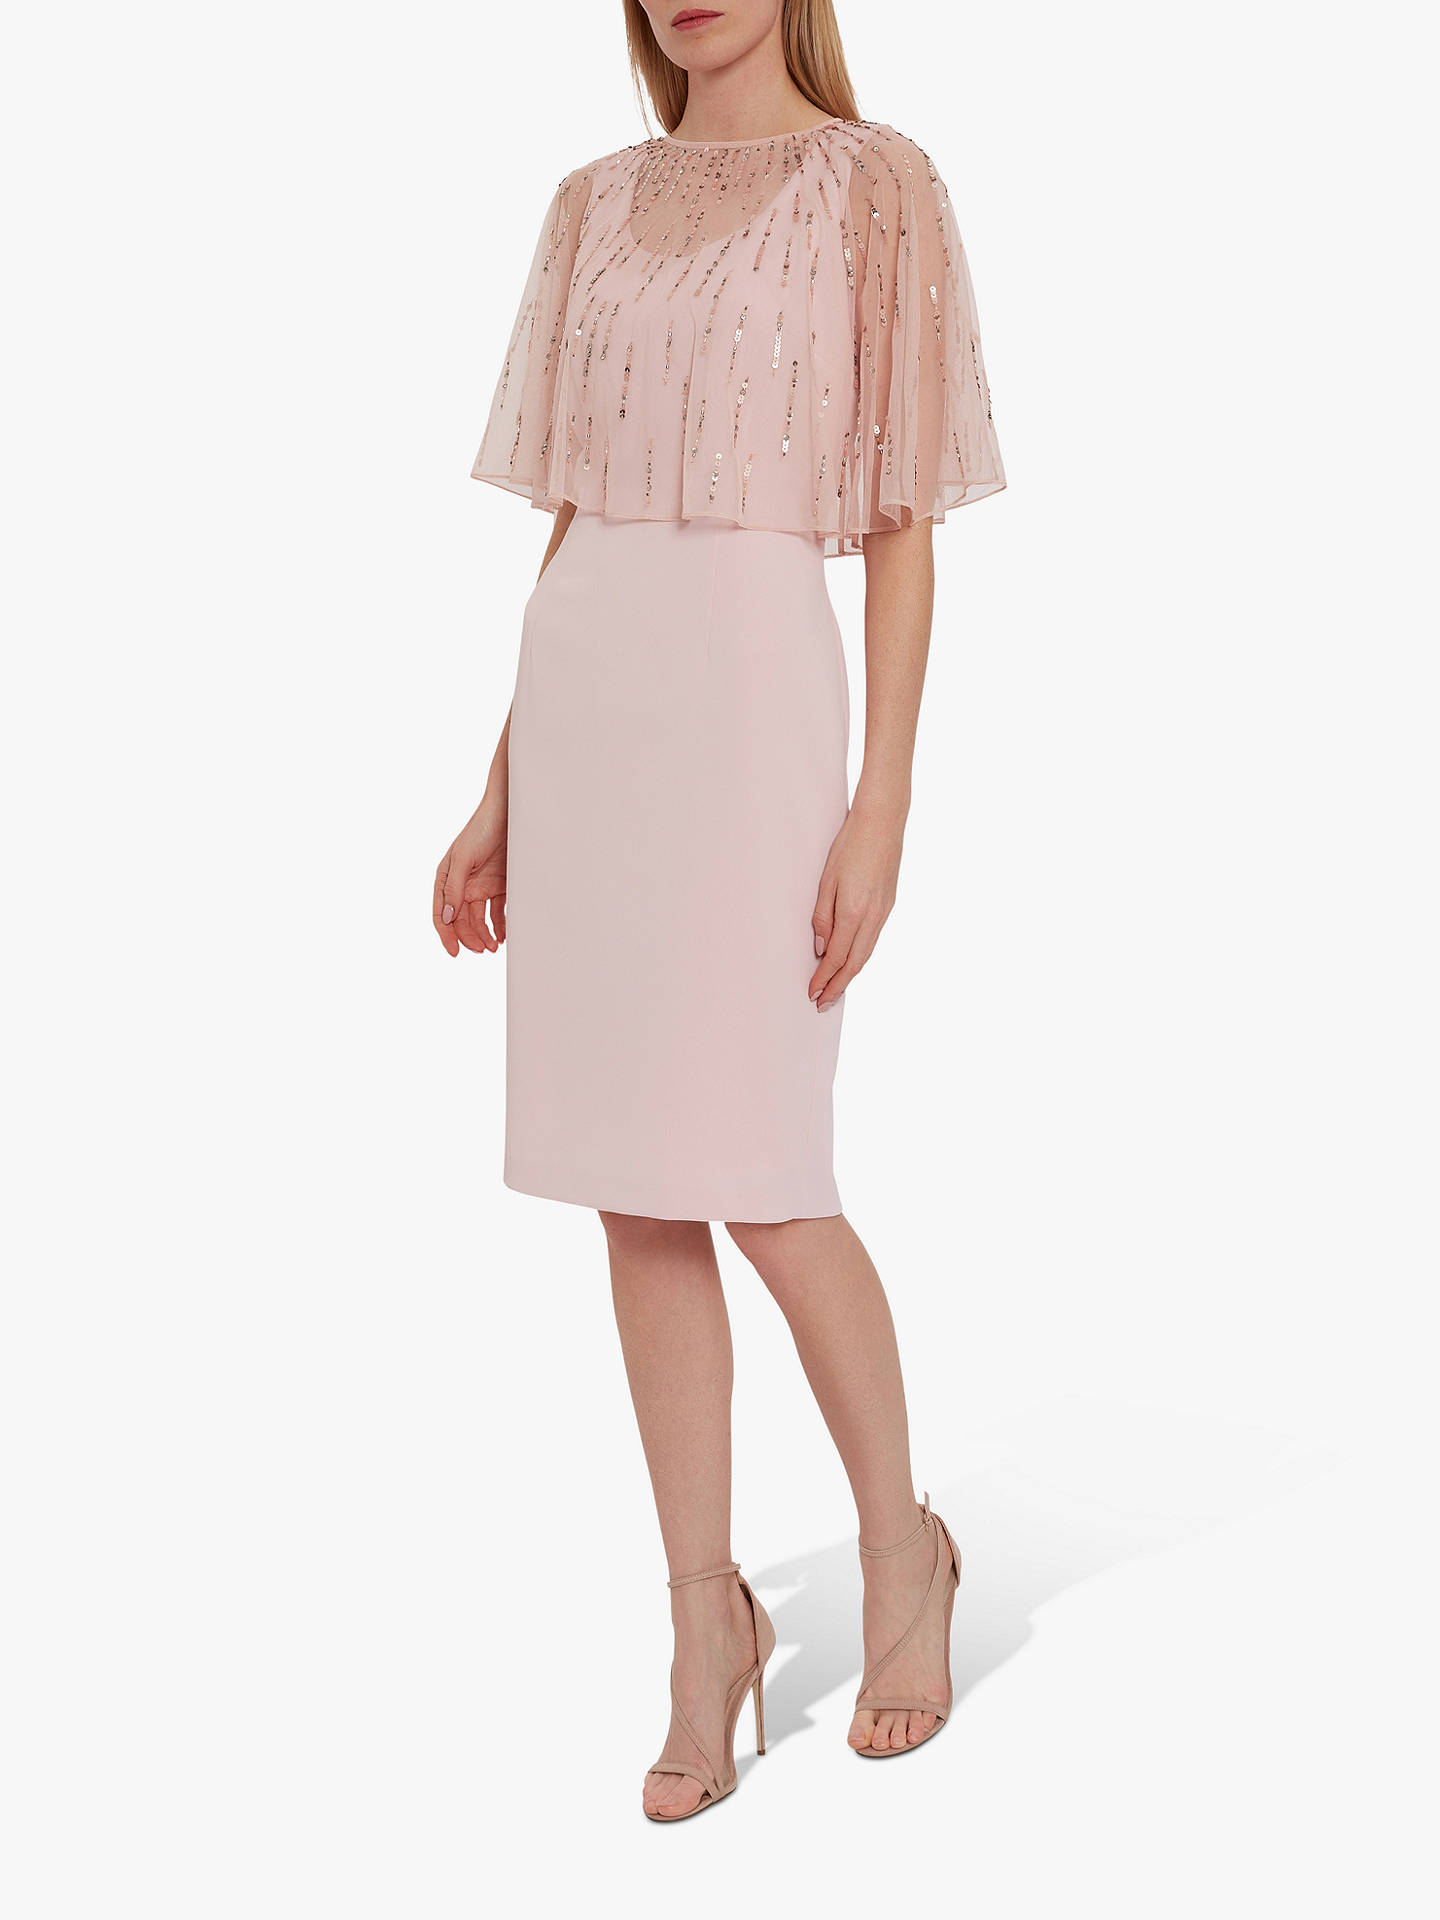 Buy Gina Bacconi Roena Mesh Cape Dress, Potpourri Pink, 8 Online at johnlewis.com